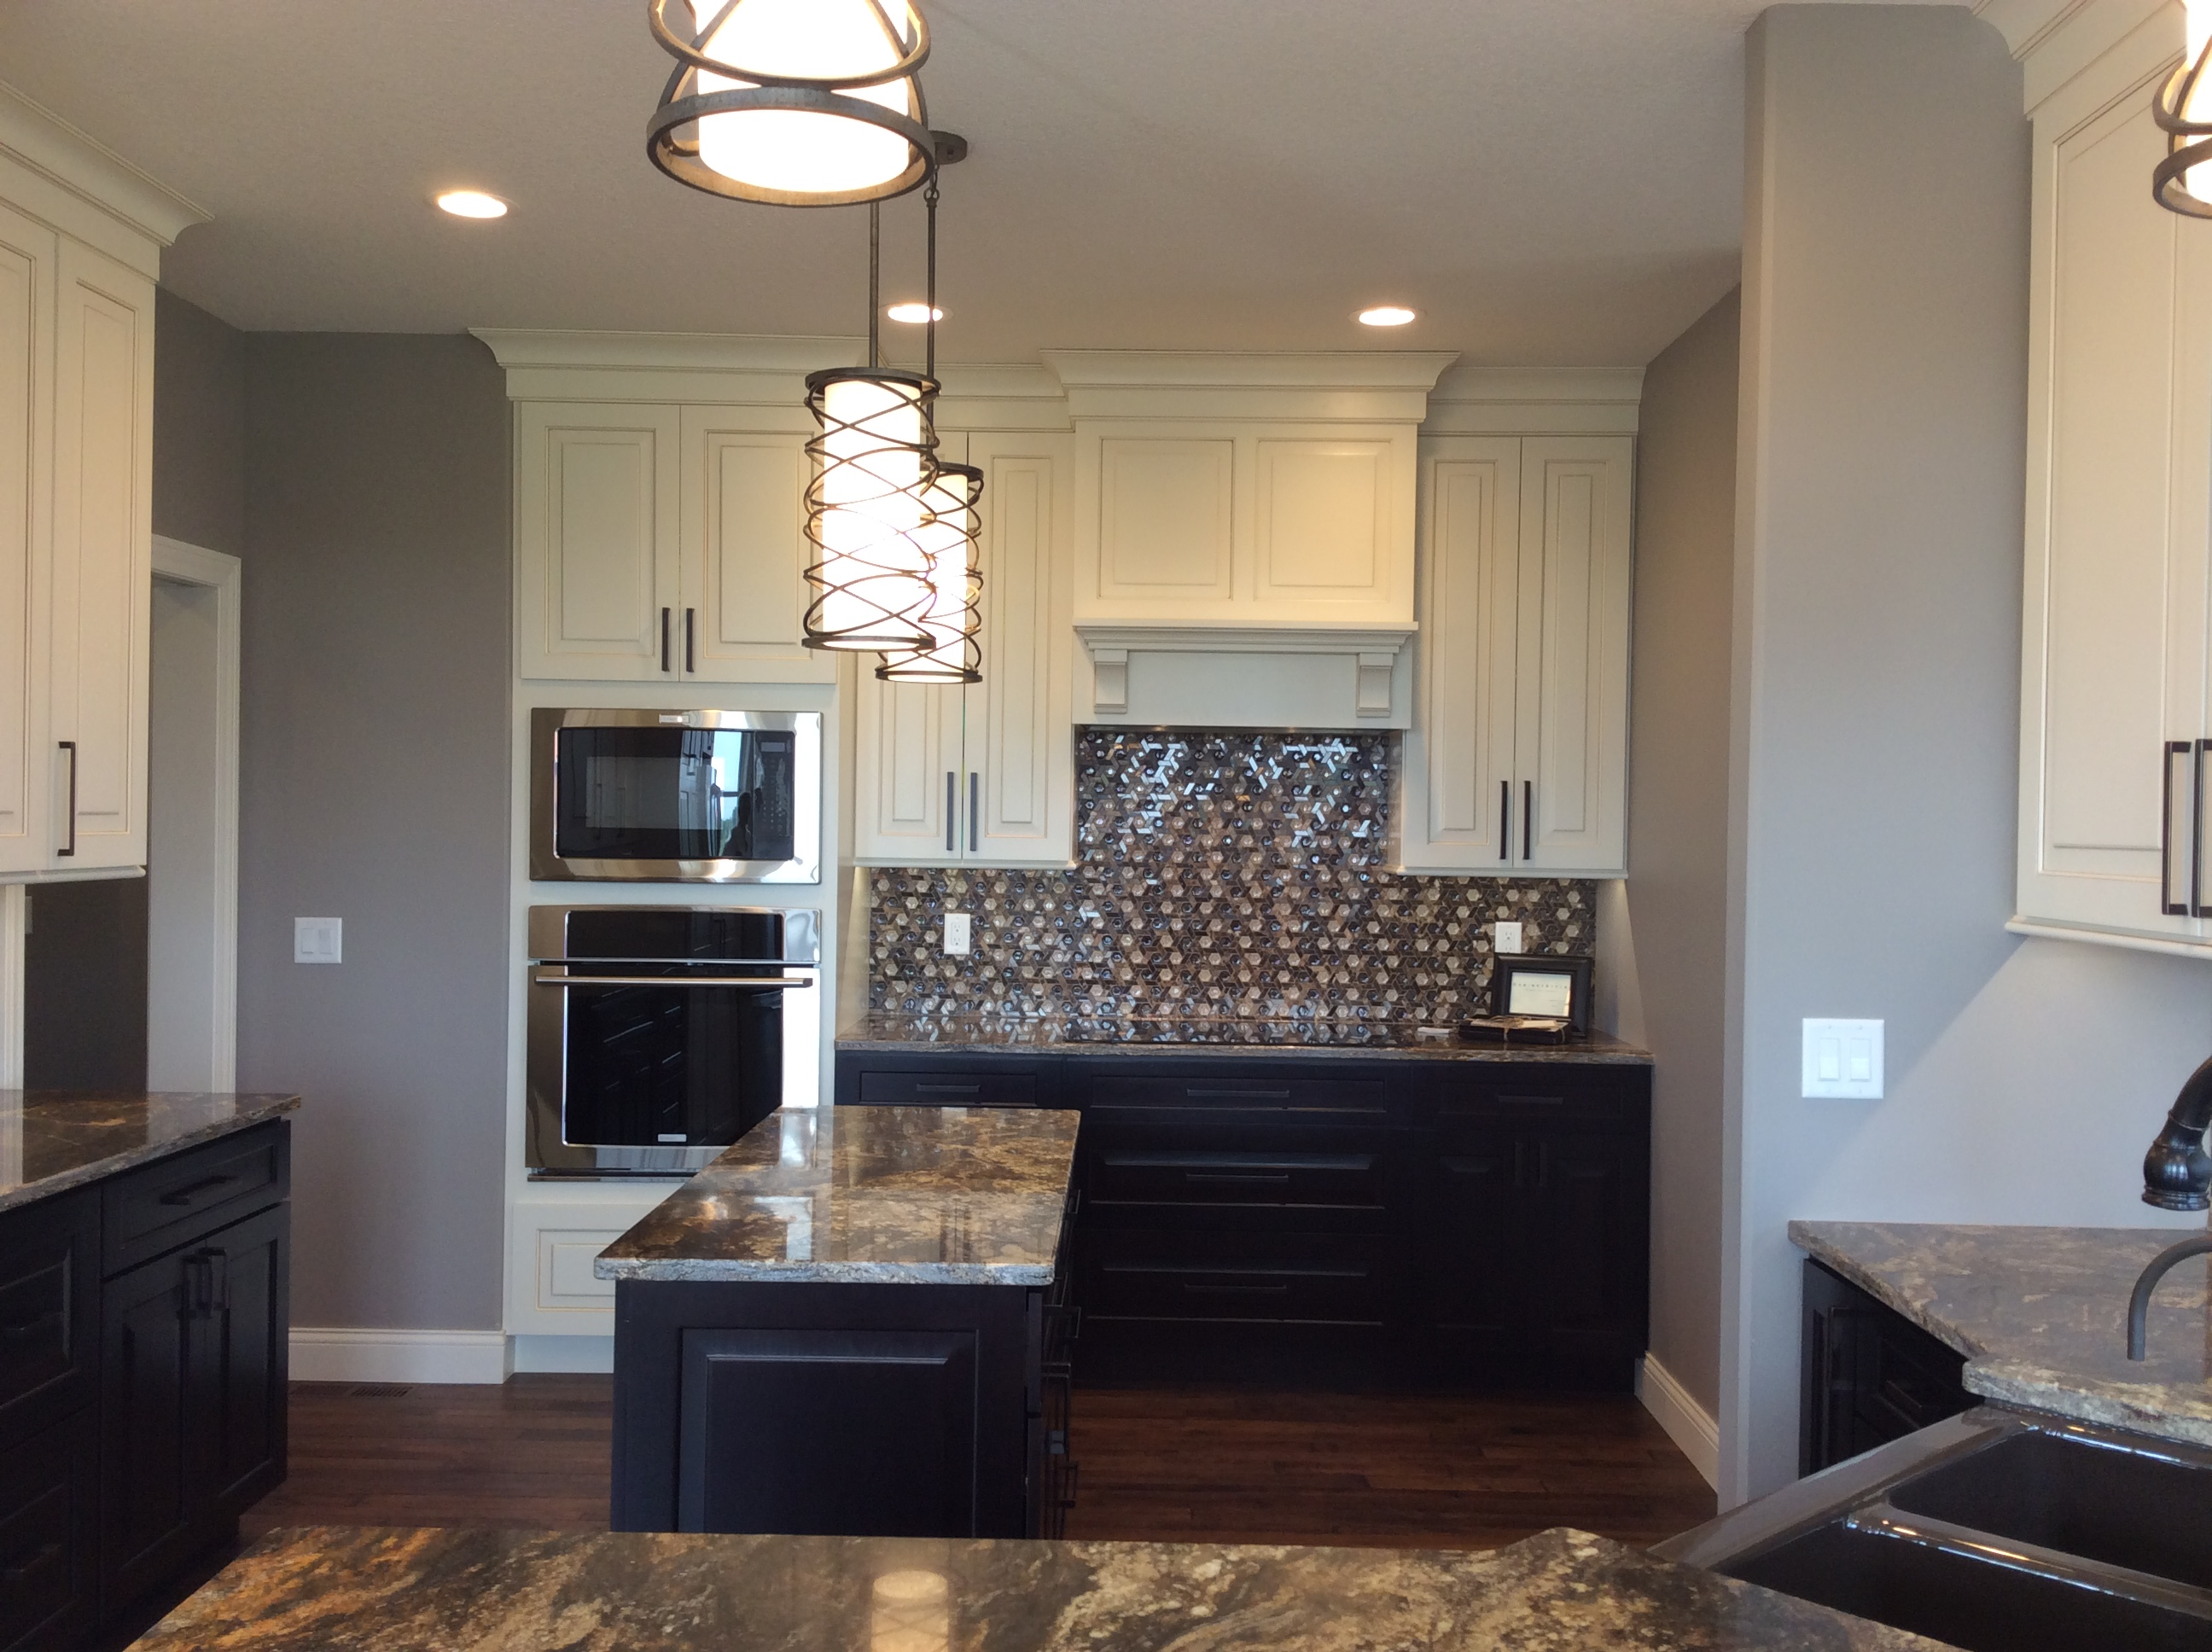 Kitchen and Wet Bar Cabinets - Coralville